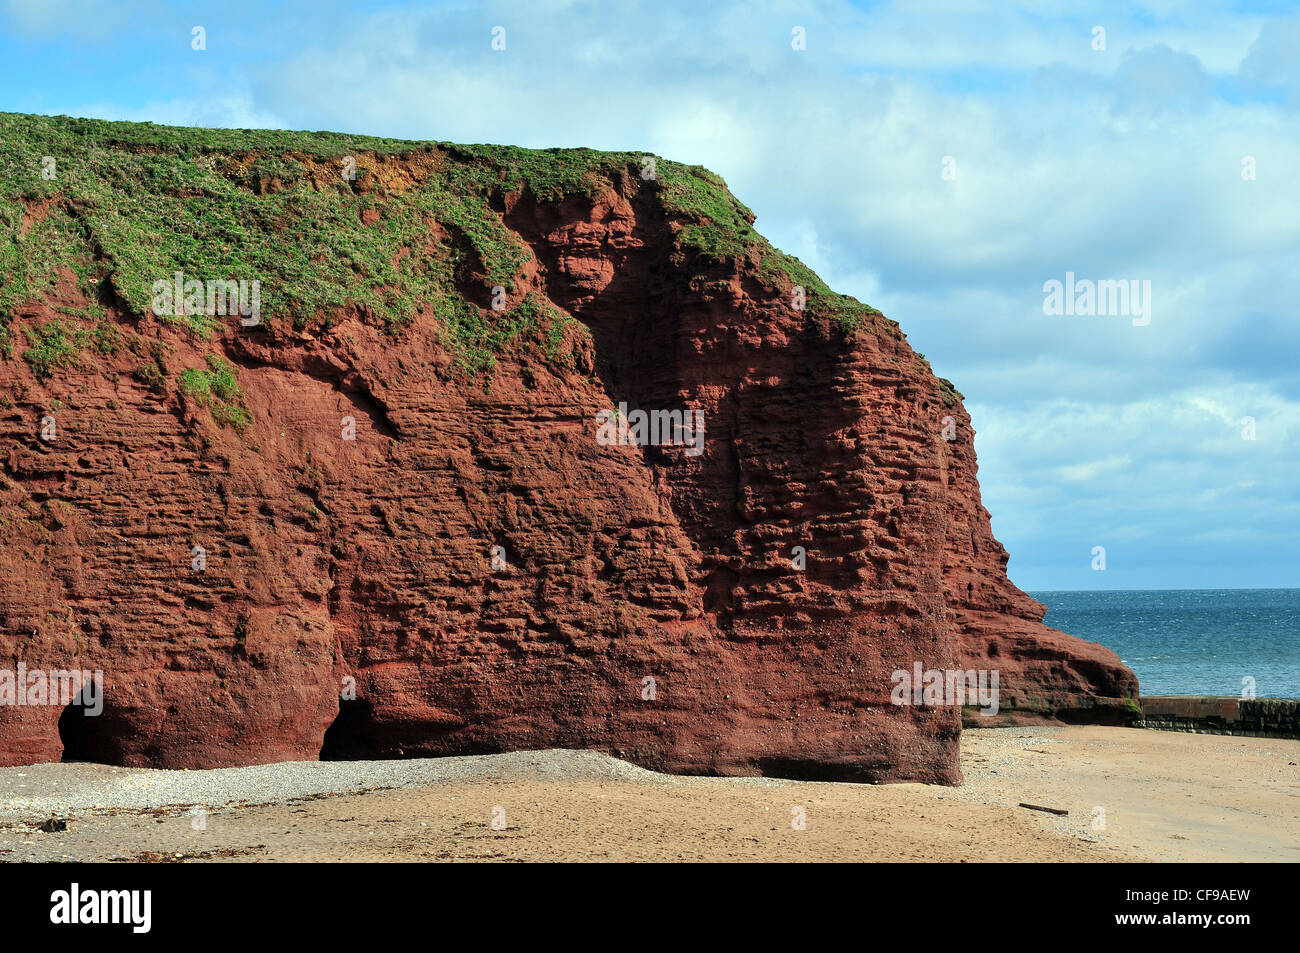 A cliff of Old Red Sandstone at Langstone Rock, Dawlish, South Devon - with caves eroded into the base. - Stock Image